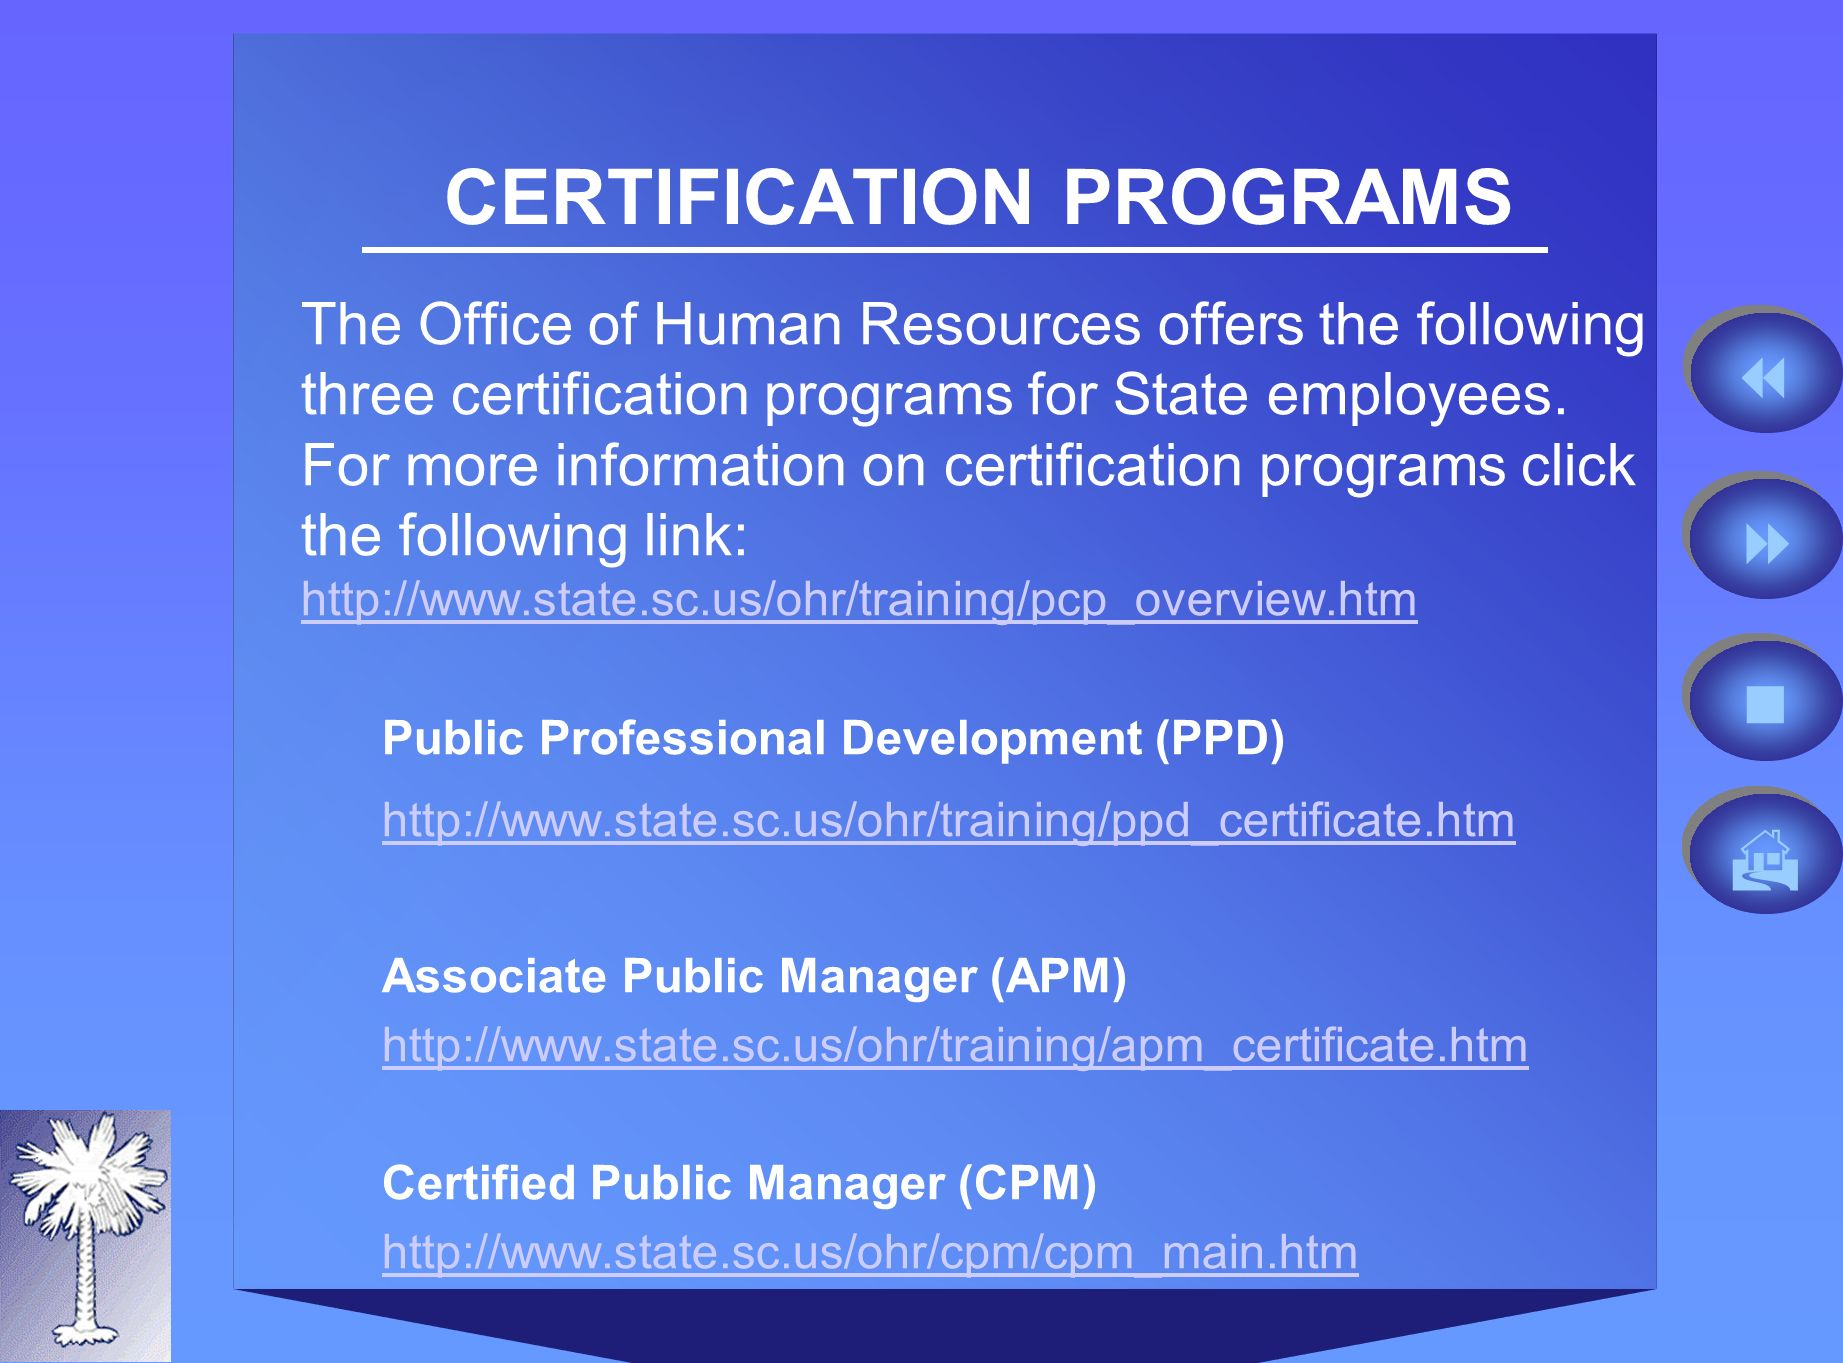 The Office of Human Resources offers the following three certification programs for State employees.